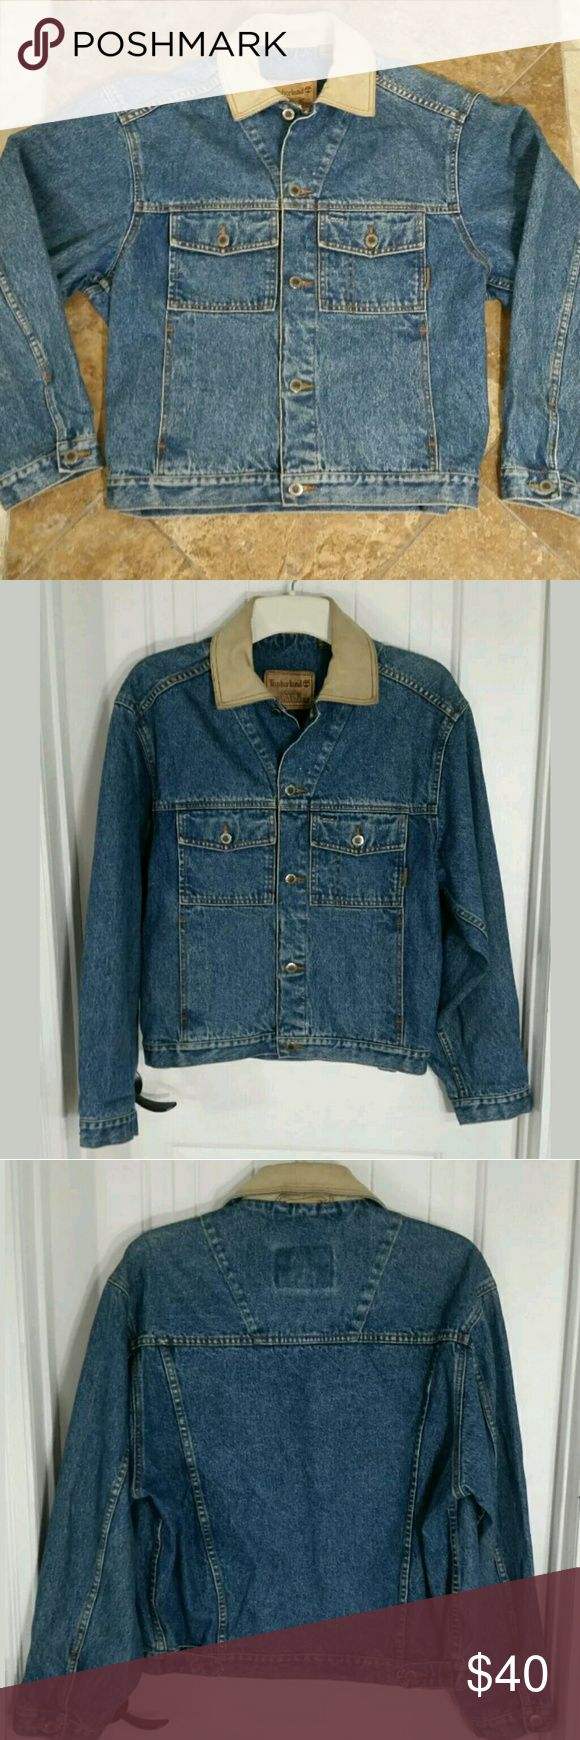 """Timberland Mens Blue Denim Jean Jacket Timberland Blue Jean Leather Jacket Mens Vintage Classic Denim Weathergear Trucker Biker Outdoorsman Button Front with Pockets. Excellent preowned condition.  Type: Jacket Style: Denim Trucker Biker Brand: Timberland Size: XS Material: Cotton Color: Medium Blue Wash Measurements: Sleeve - 24"""" / Chest - 46"""" / Length - 26"""" Condition: Great preowned condition - No holes, no stains, no piling.  Country of Manufacturer: Malaysia Stock Number: Closet…"""